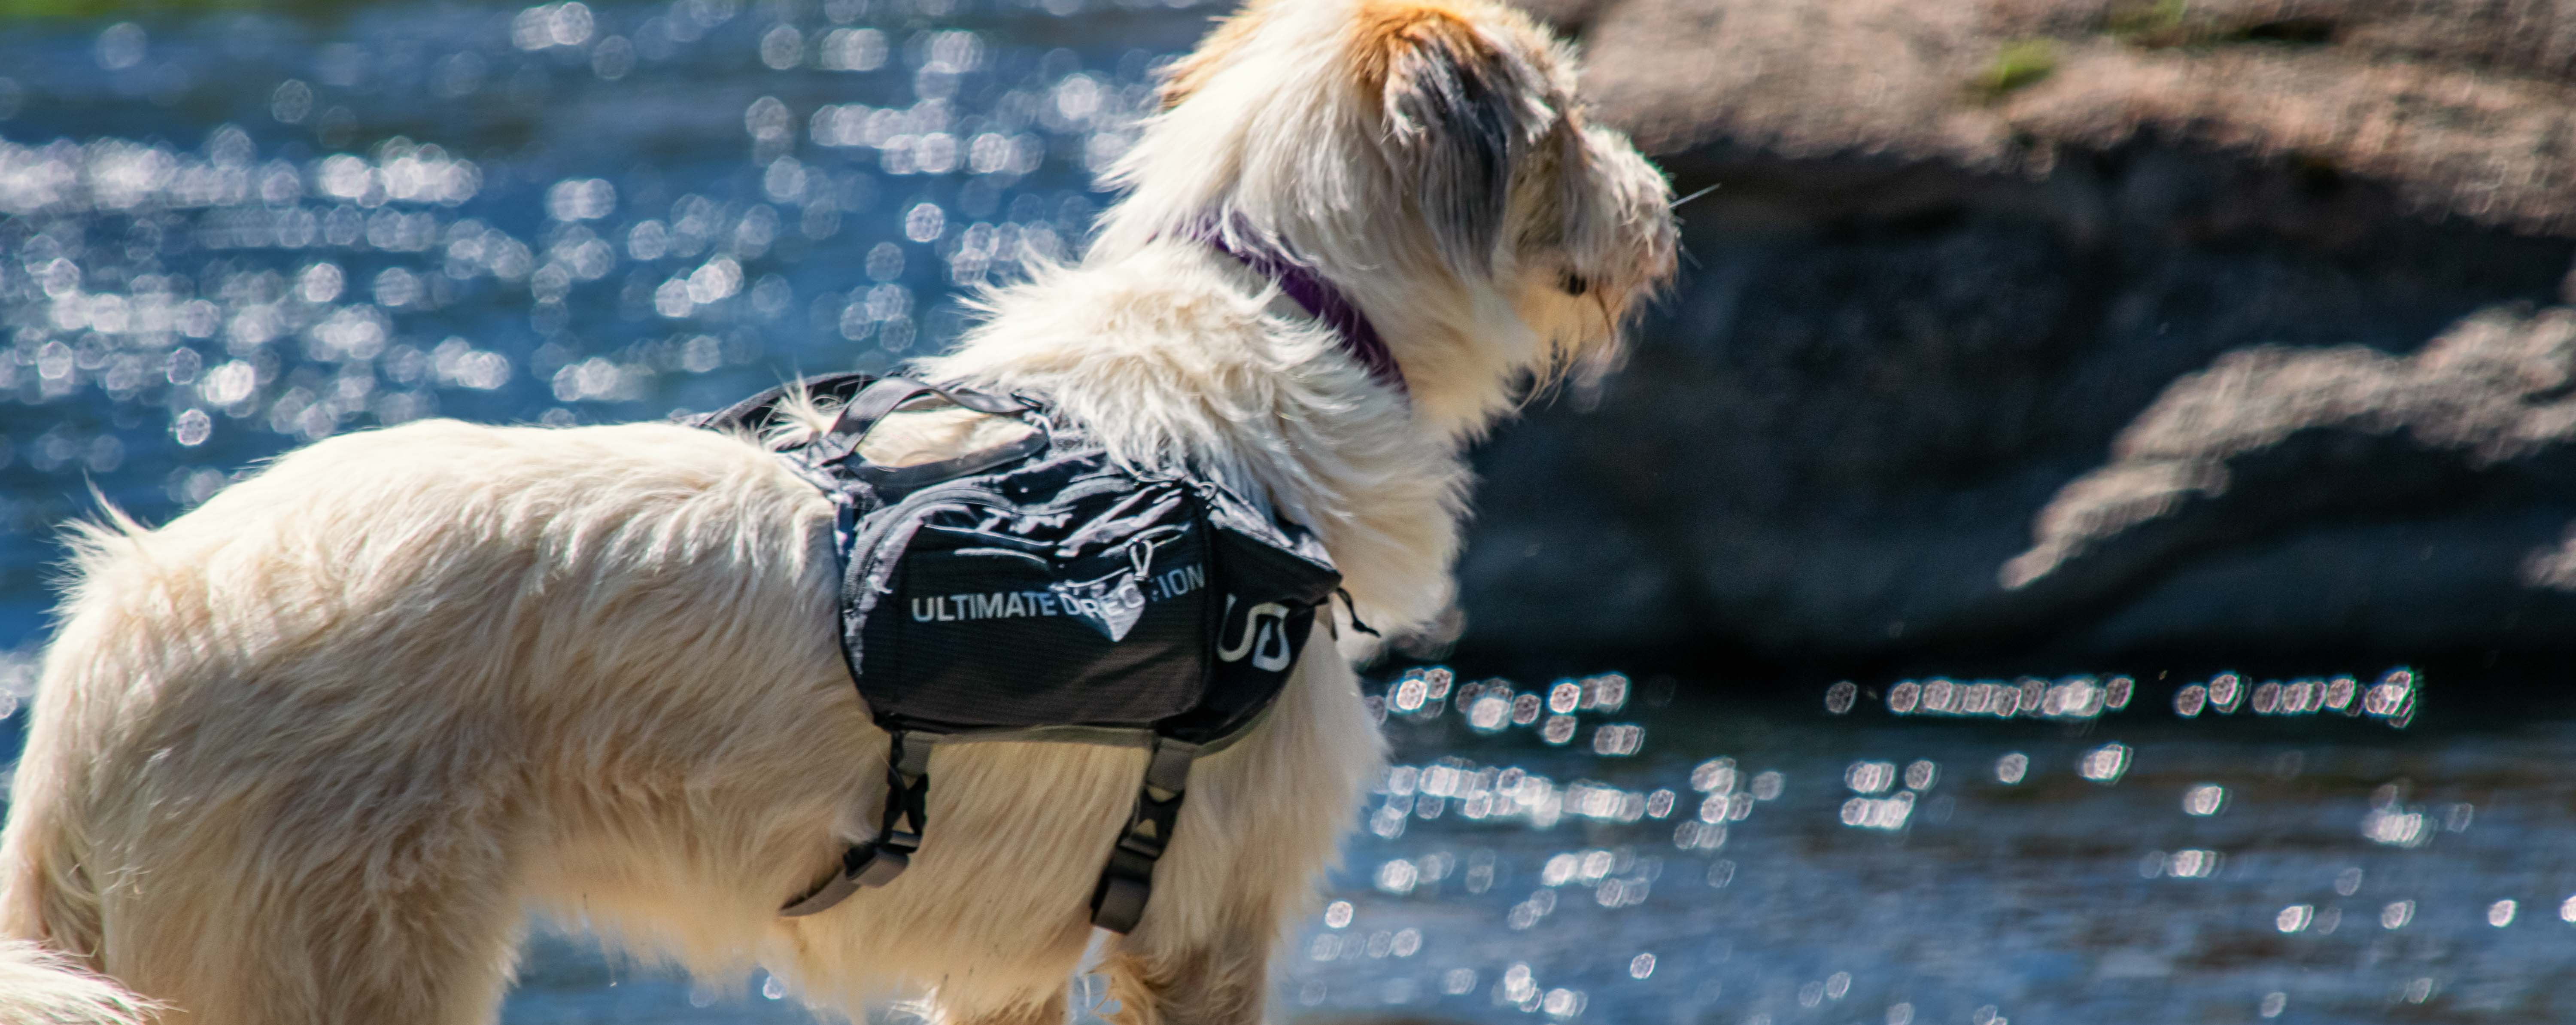 ultimate-direction-dog-vest-review-dirtbagdreams.com